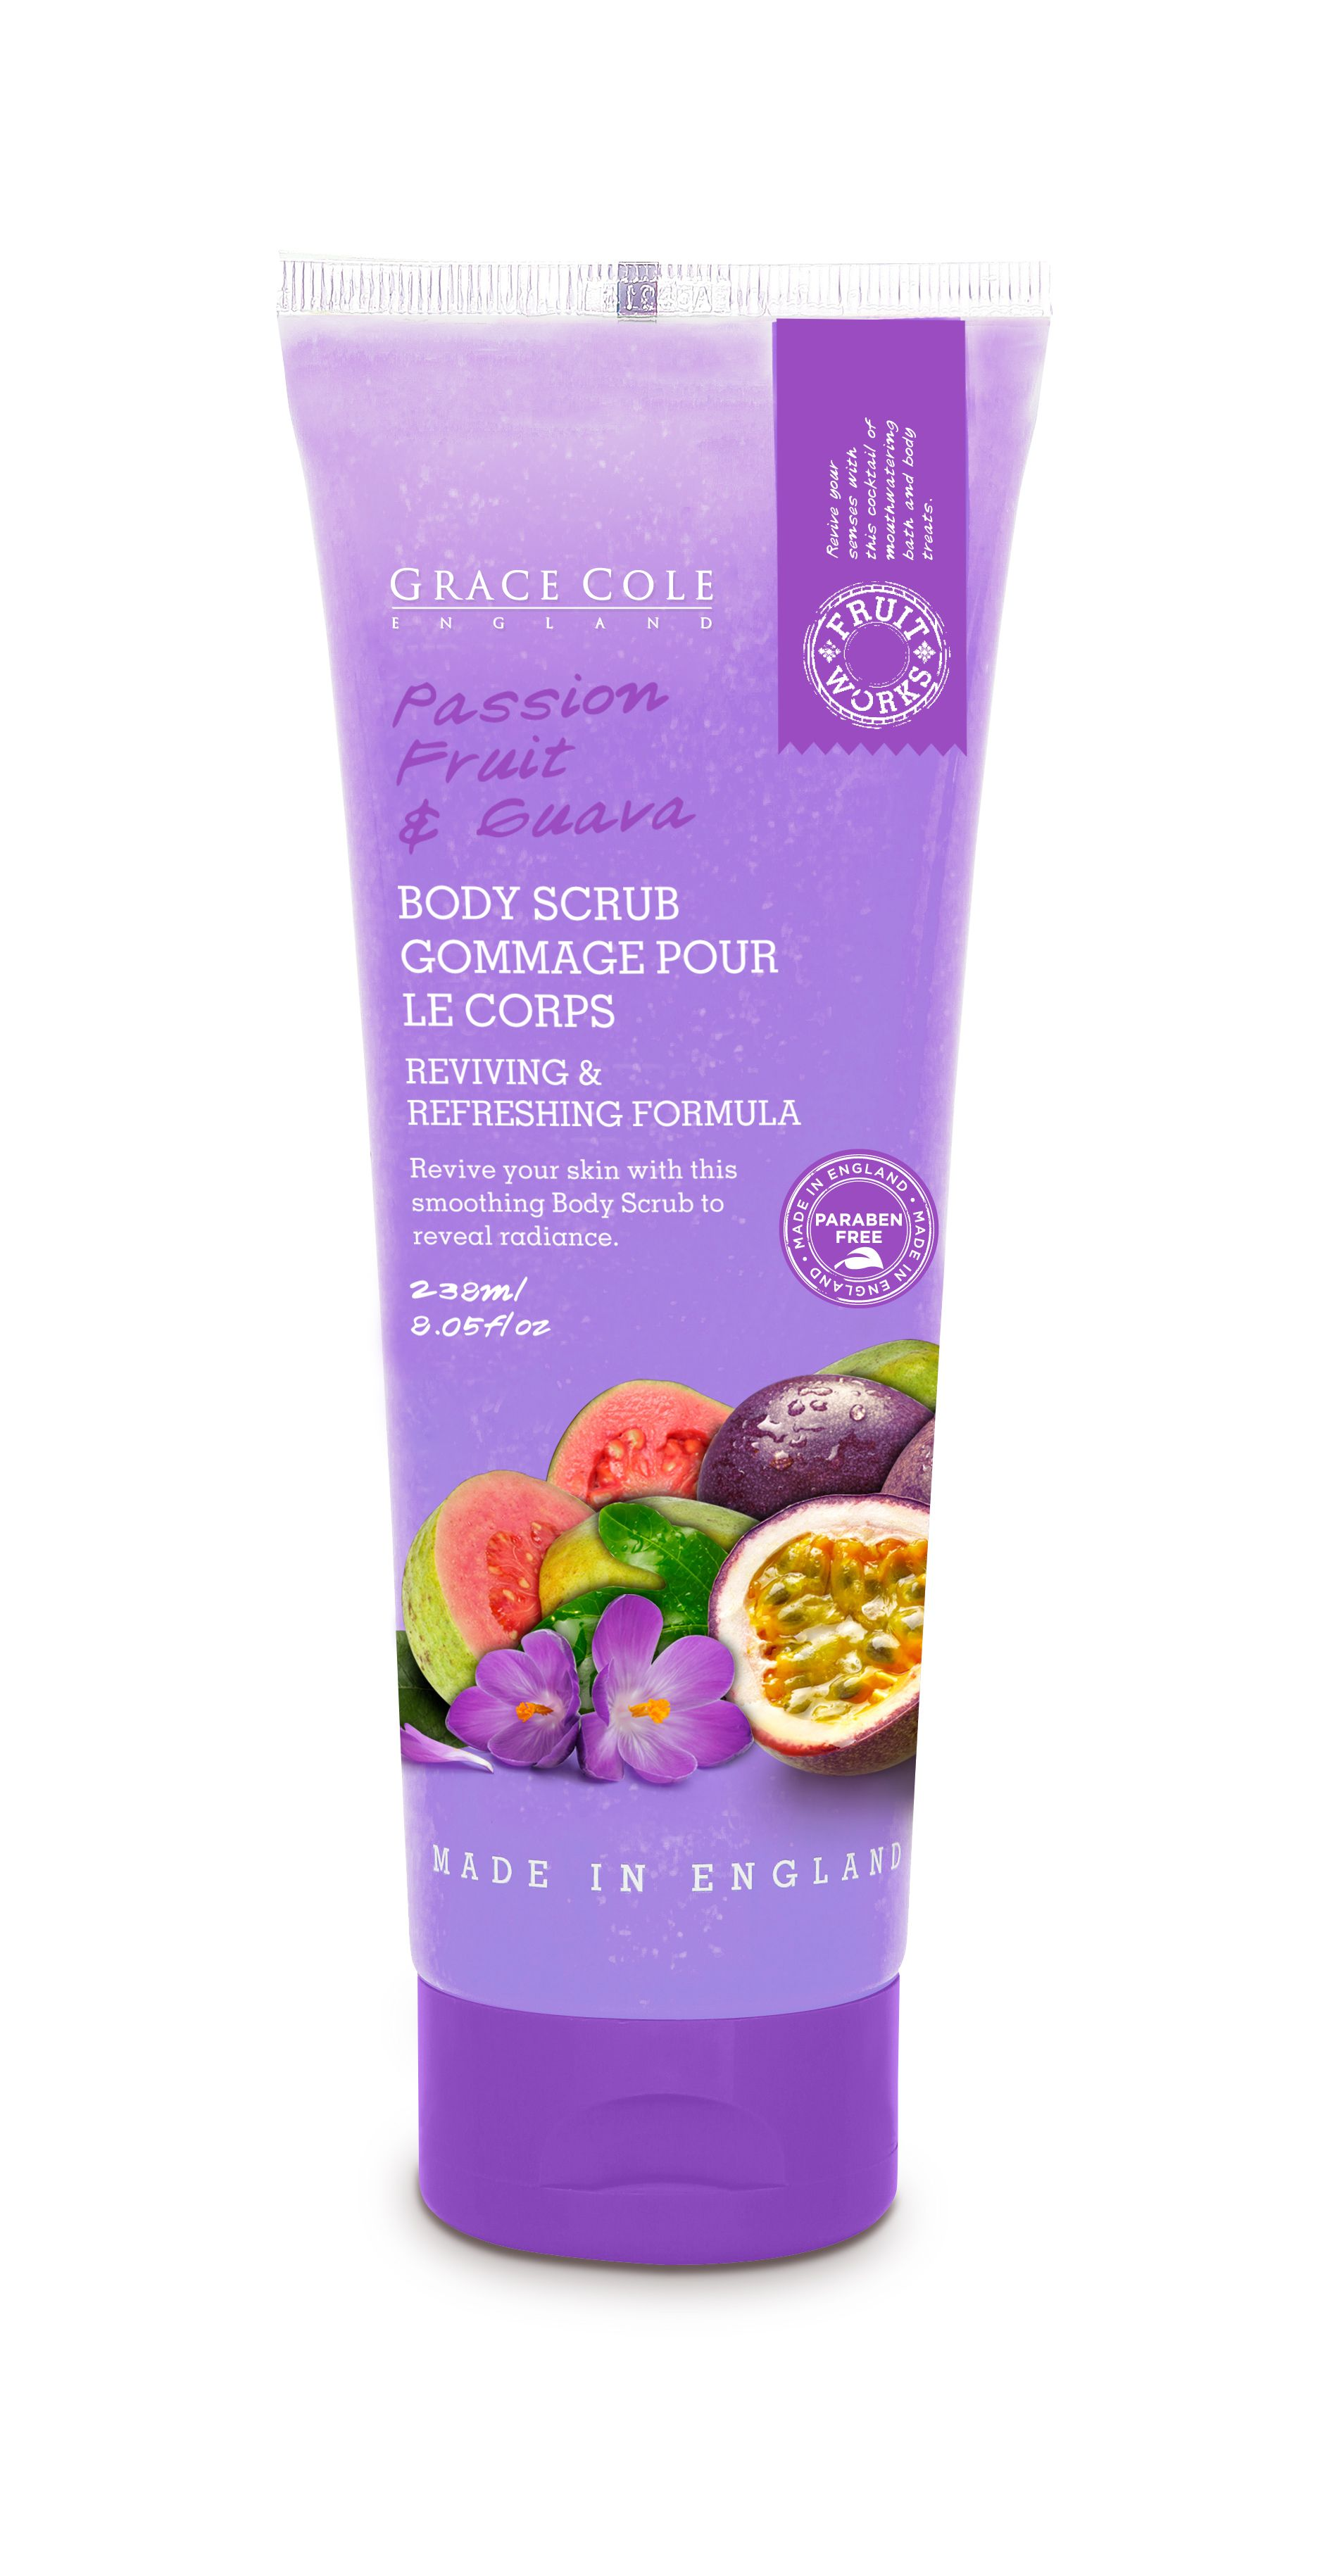 Passion Fruit & Guava Body Scrub 238ml